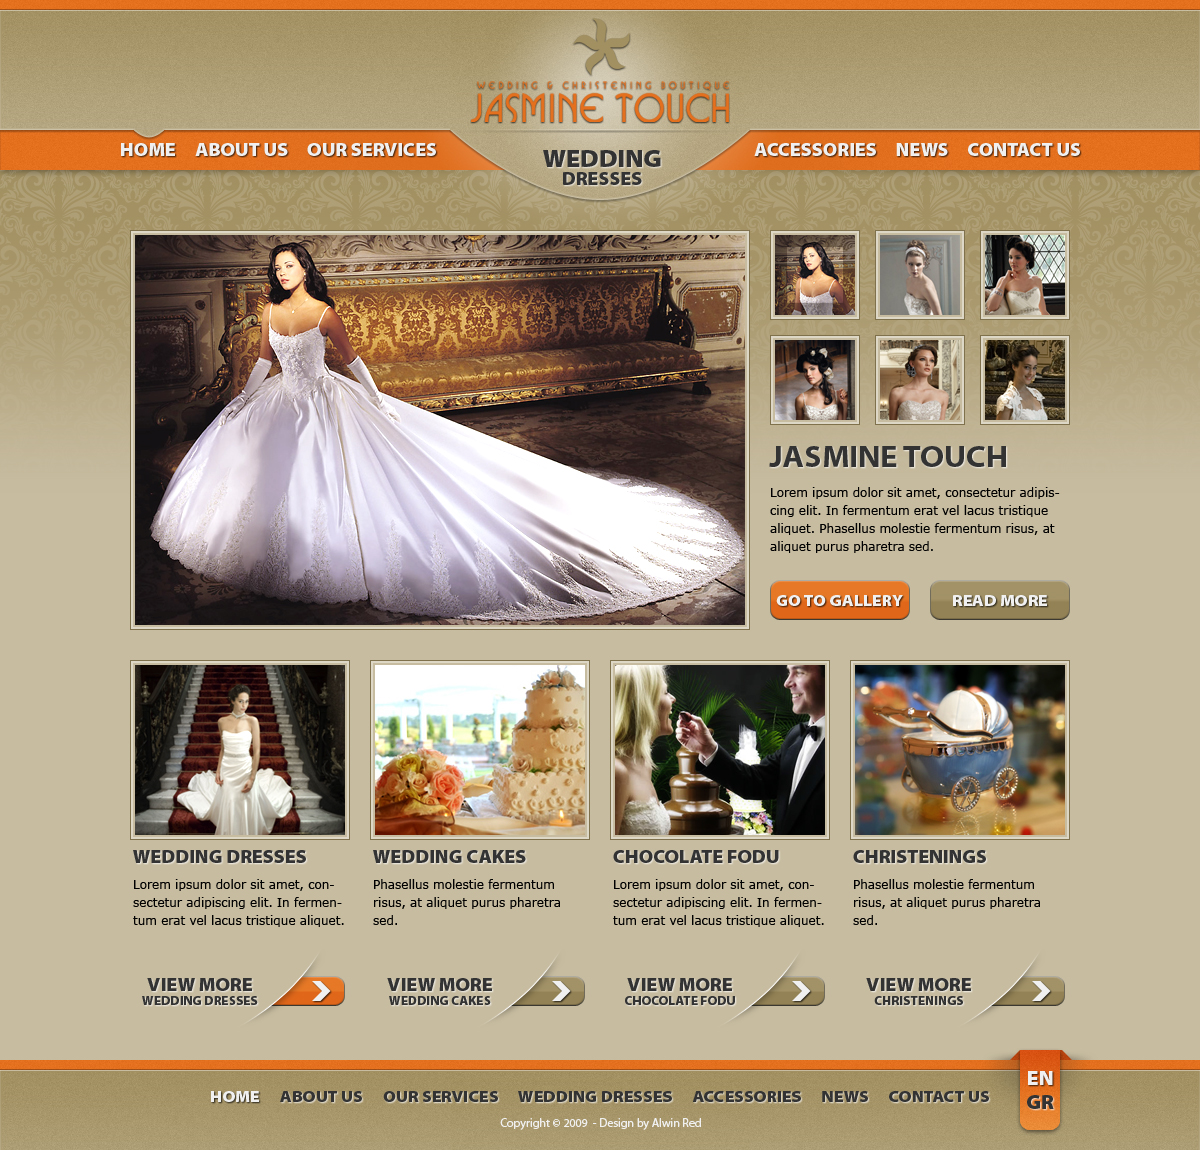 Wedding dresses website by alwinred on deviantart for Where can i sell my wedding dress locally